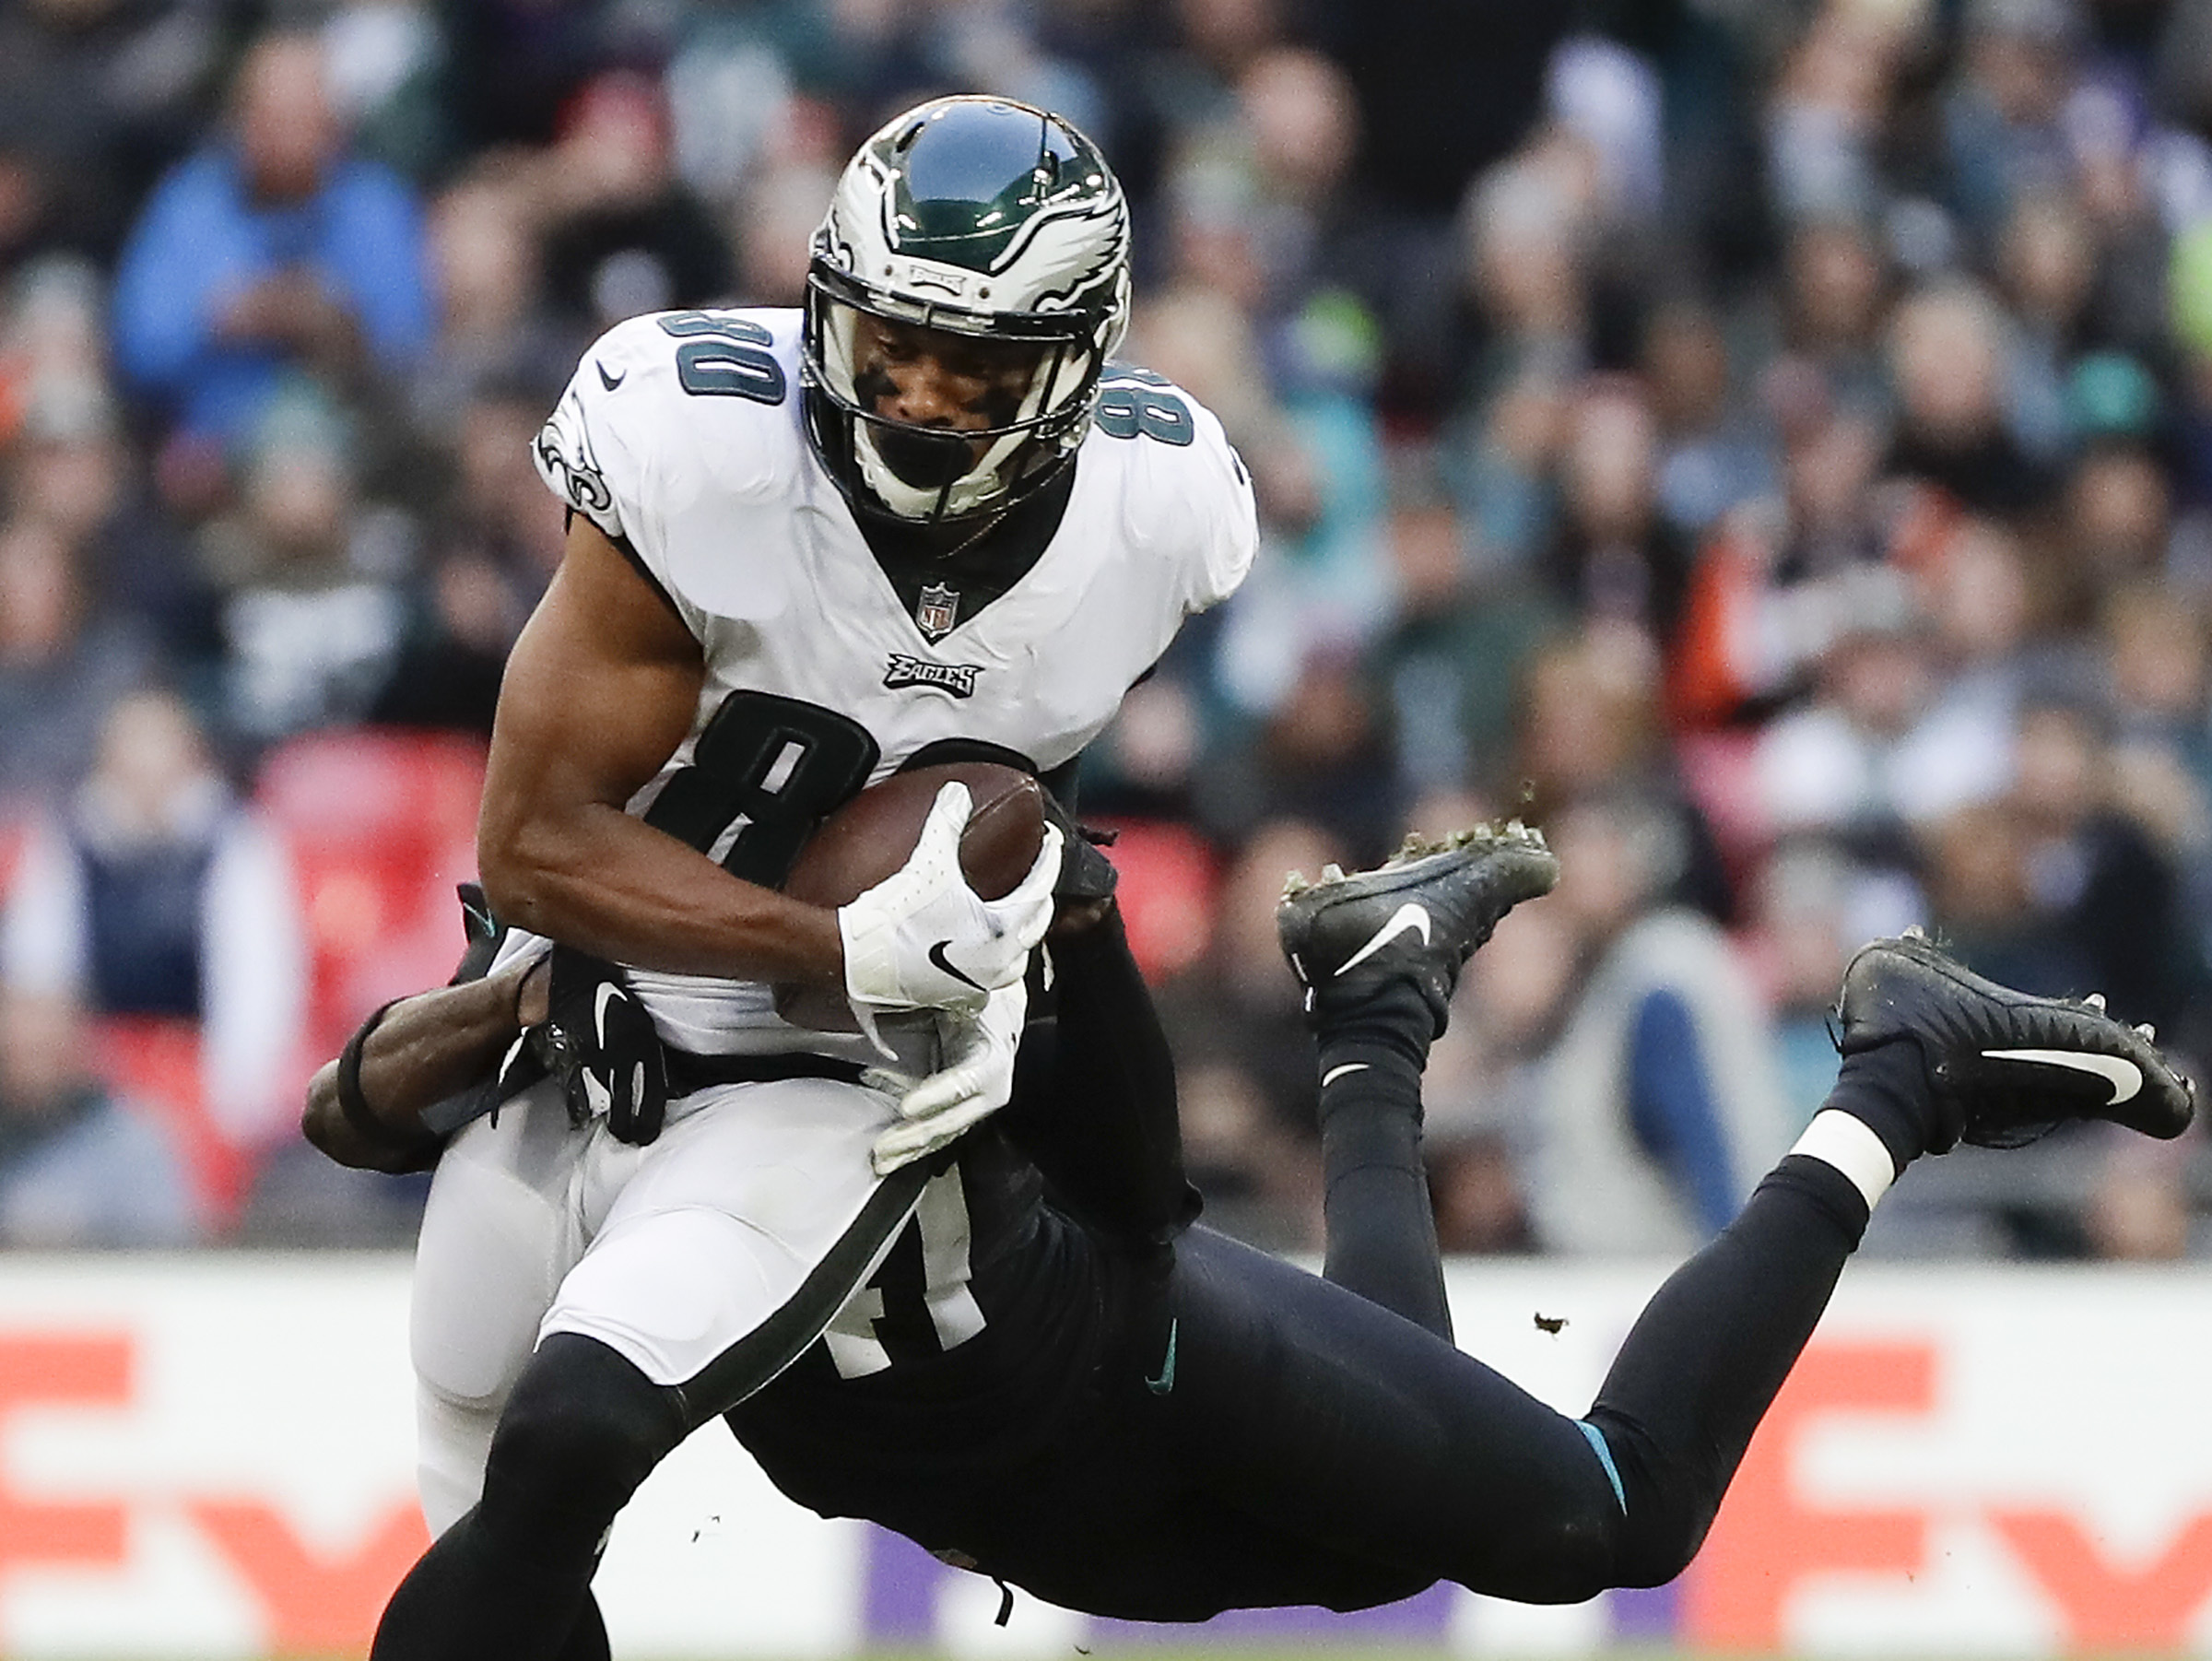 Jordan Matthews runs past Jaguars cornerback Tre Herndon during the fourth quarter on Sunday.